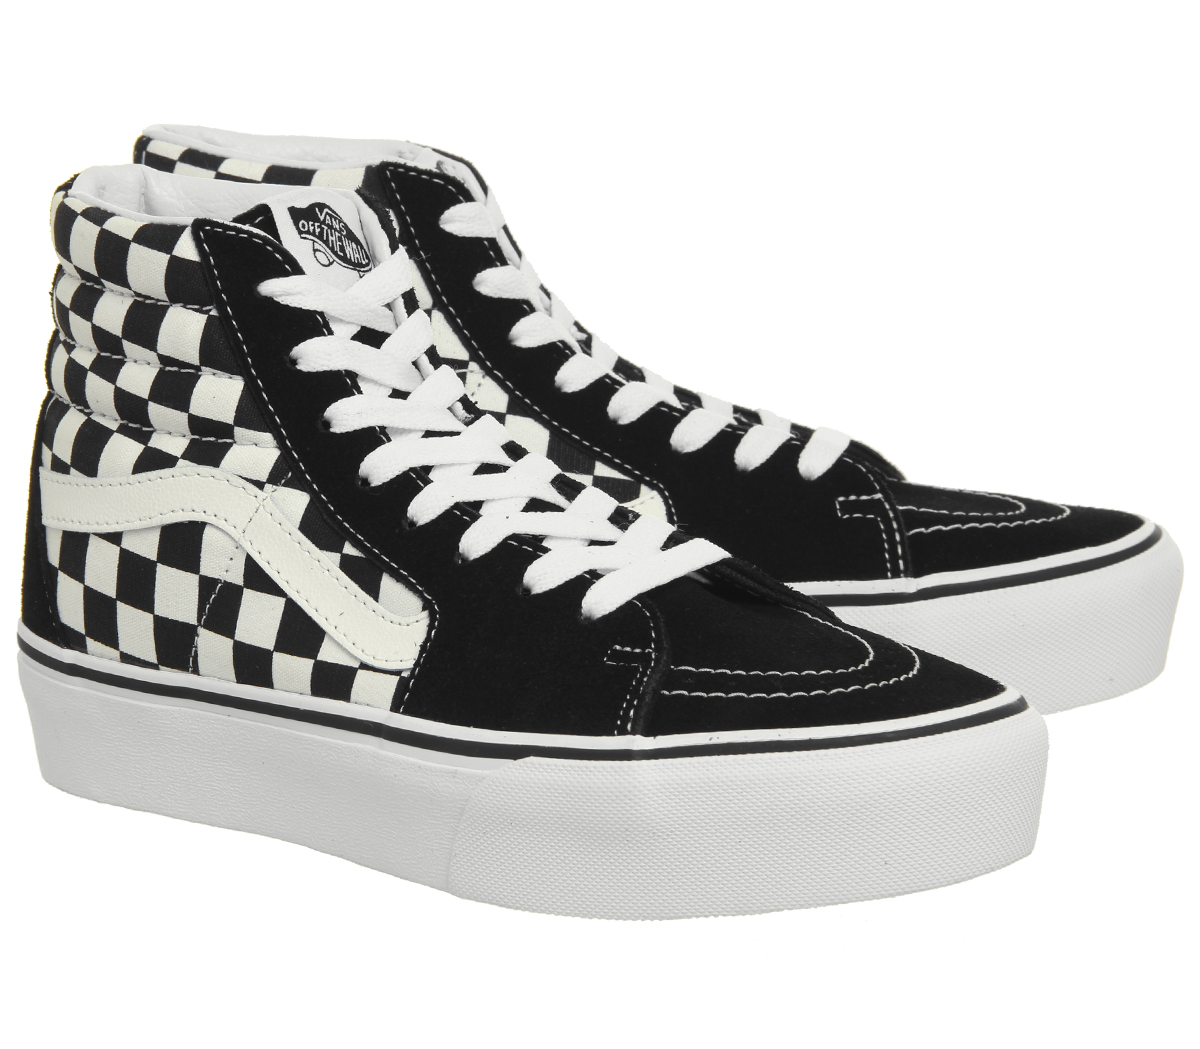 Womens Vans Sk8 Hi Platform 2.0 Trainers Black White Checkerboard ... e8fbe17f0